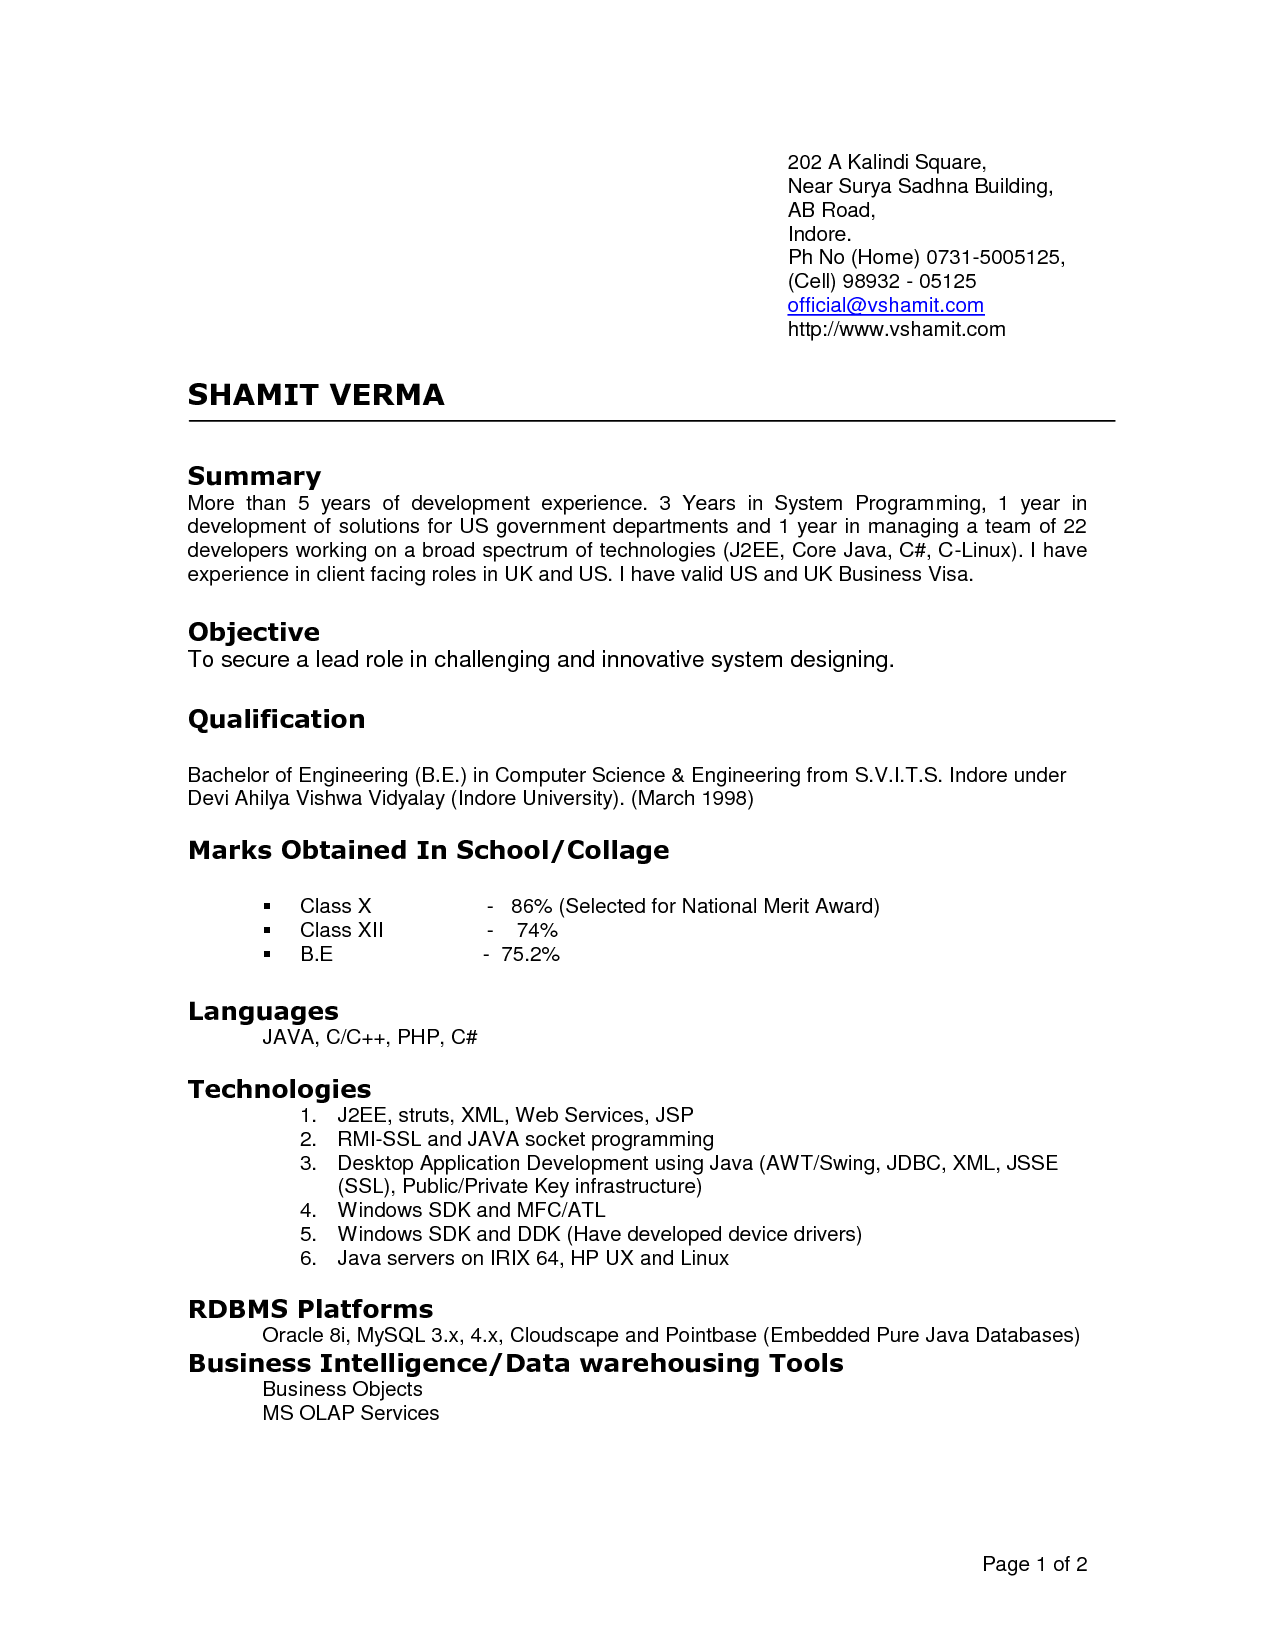 Examples Current Resume Styles